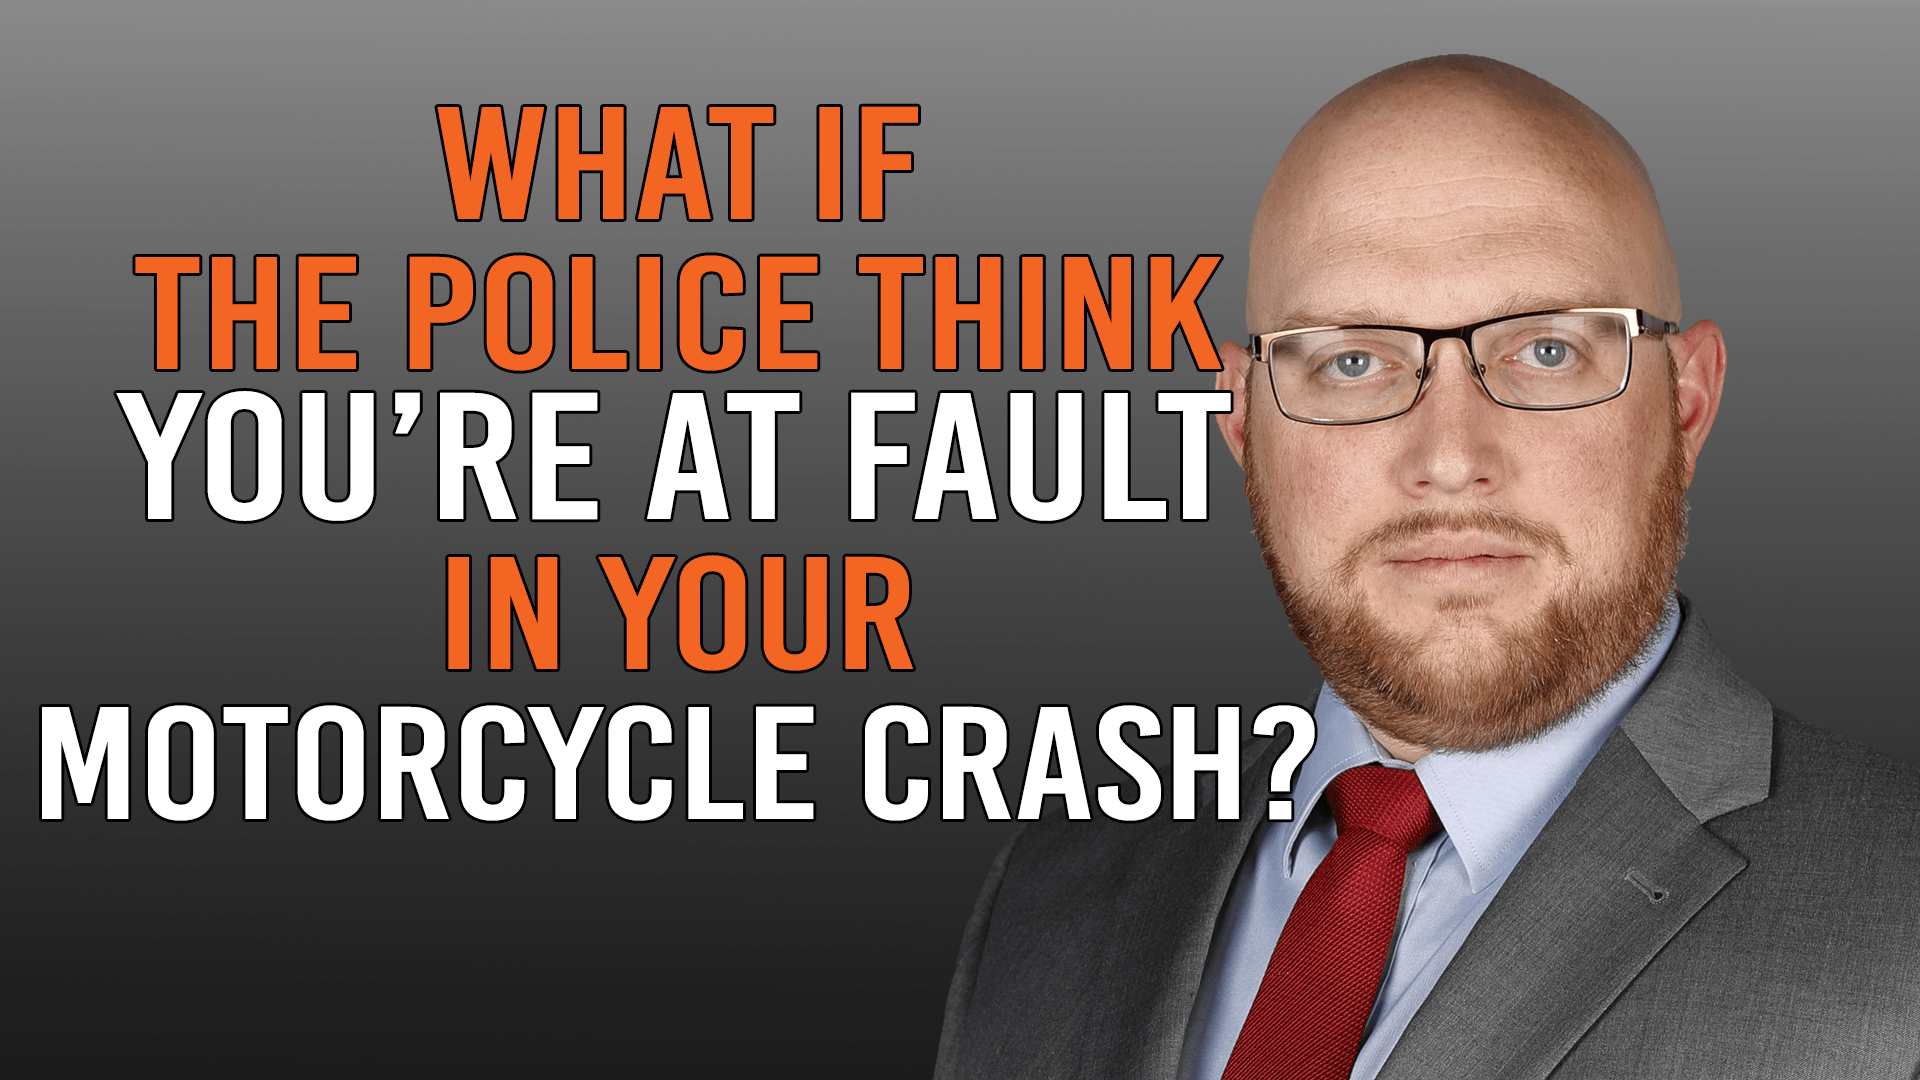 what if you're at fault in your motorcycle crash?